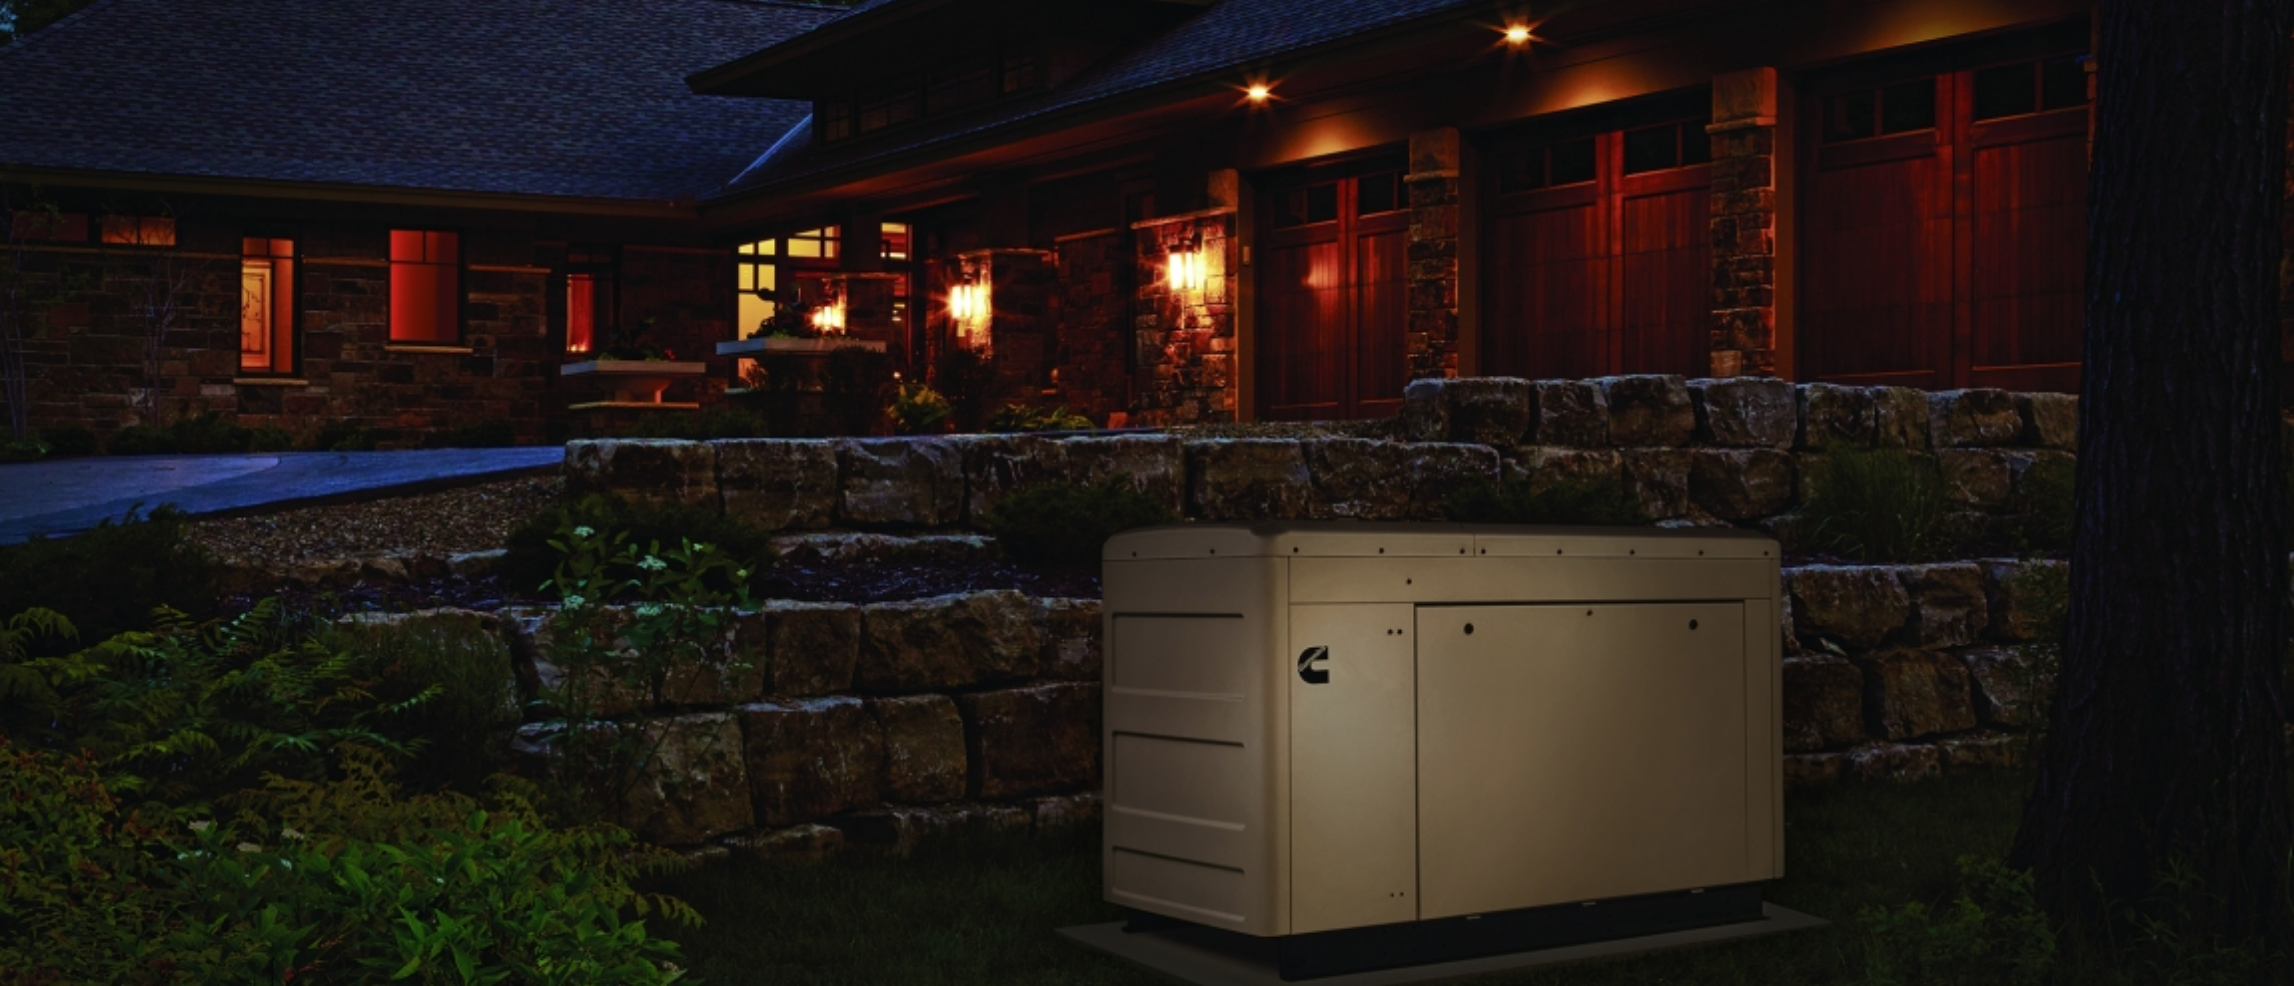 Cummins Residential Generators Add to Home Resale Value